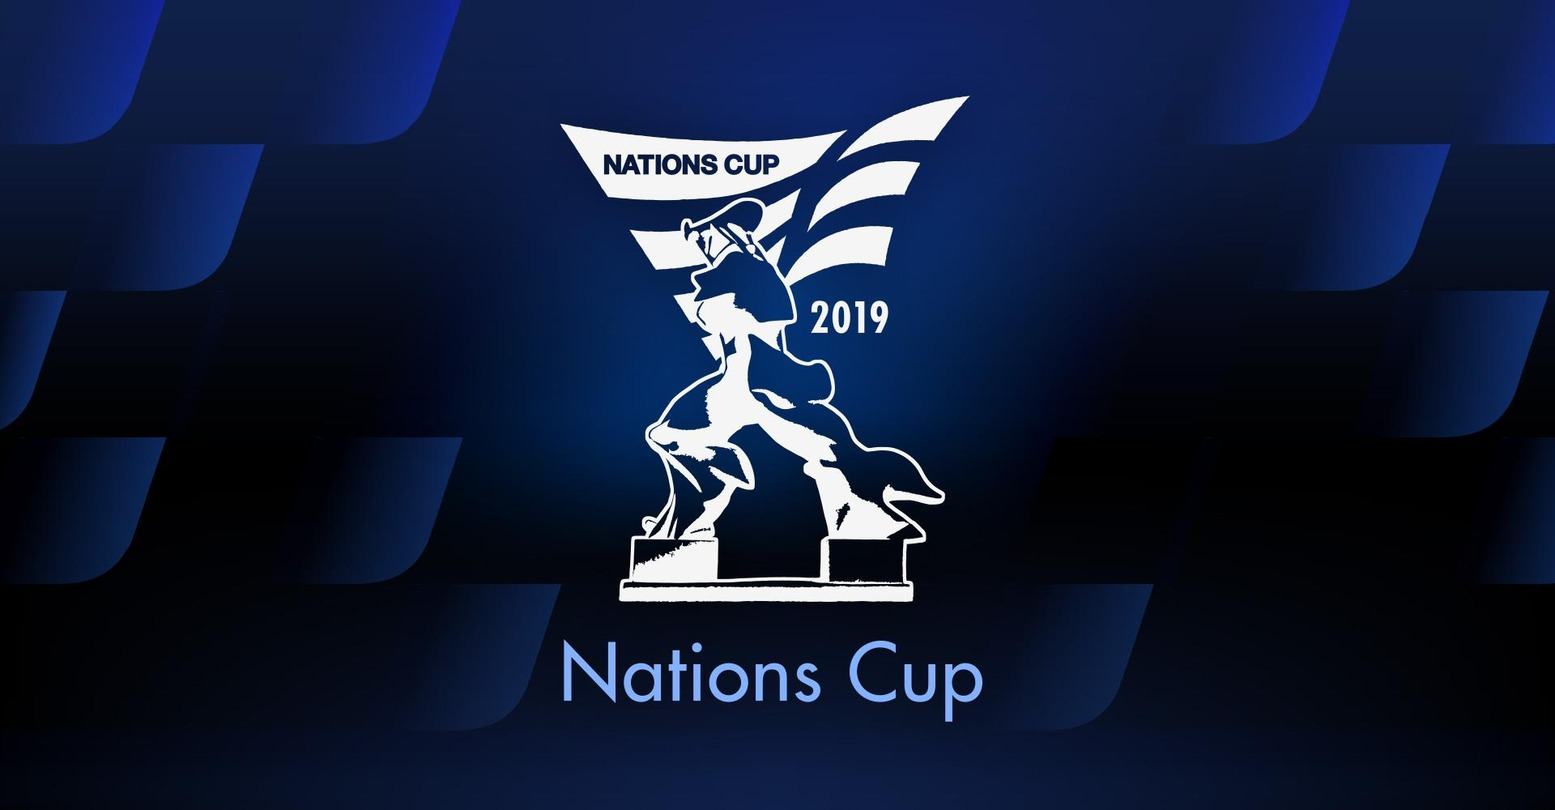 Nations Cup Série 2019 - FIA GT Championships